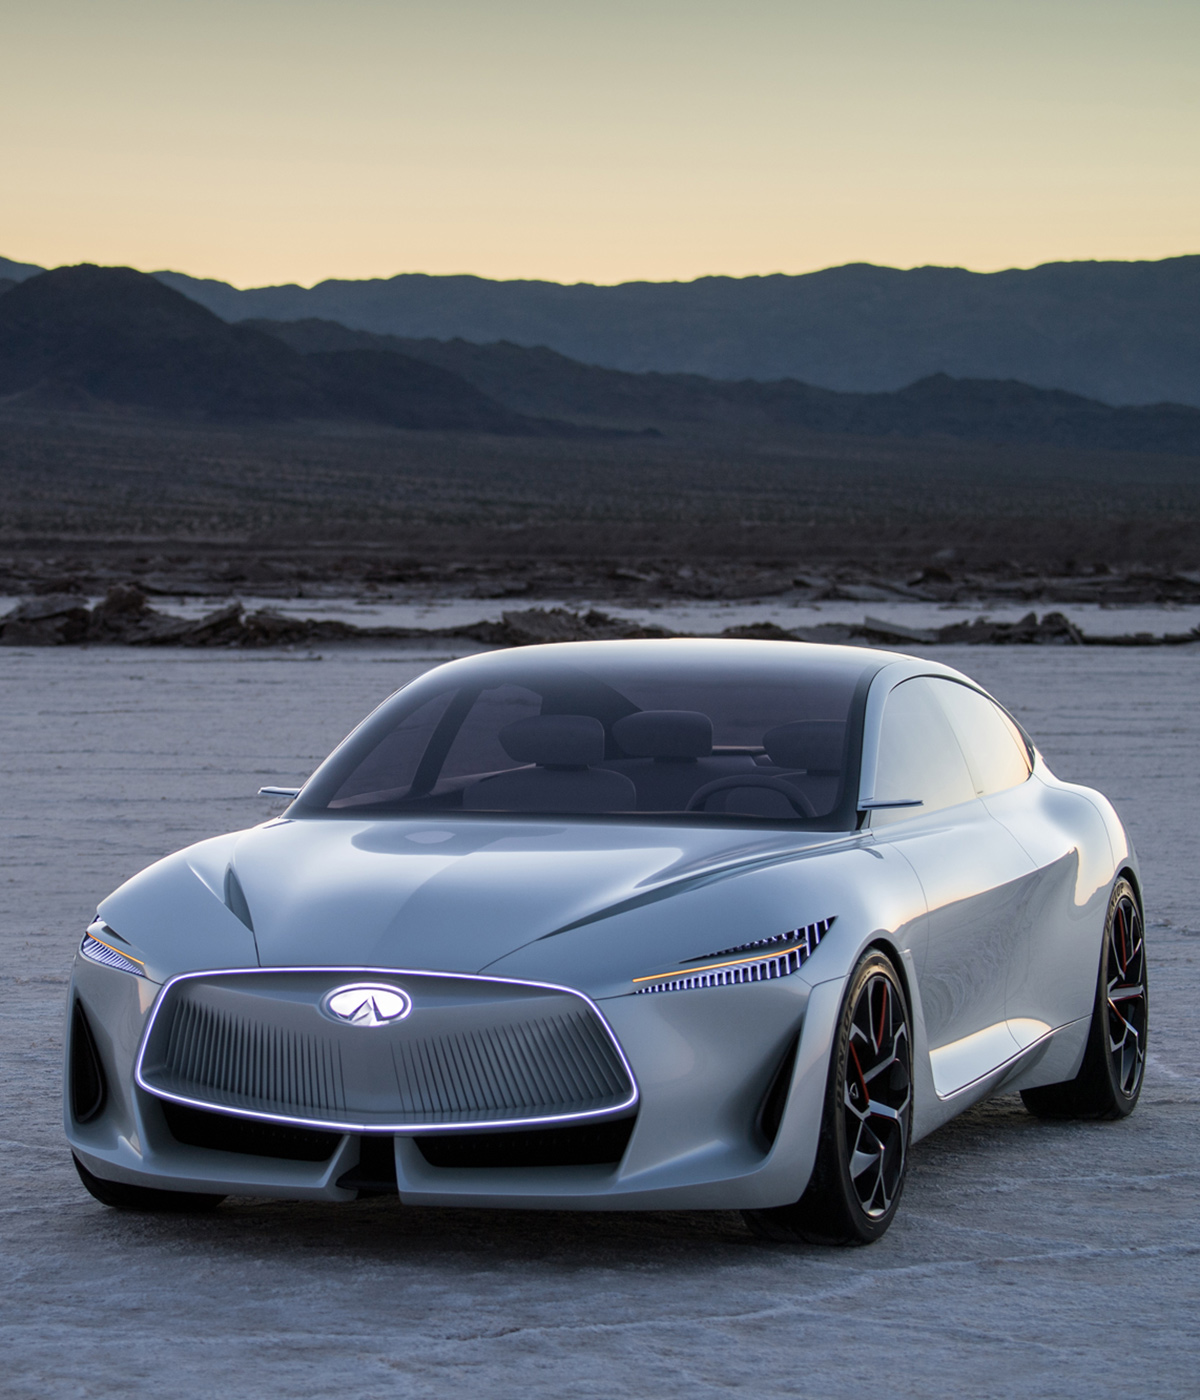 Infiniti Introduces Its Dynamic Q Inspiration Concept Car